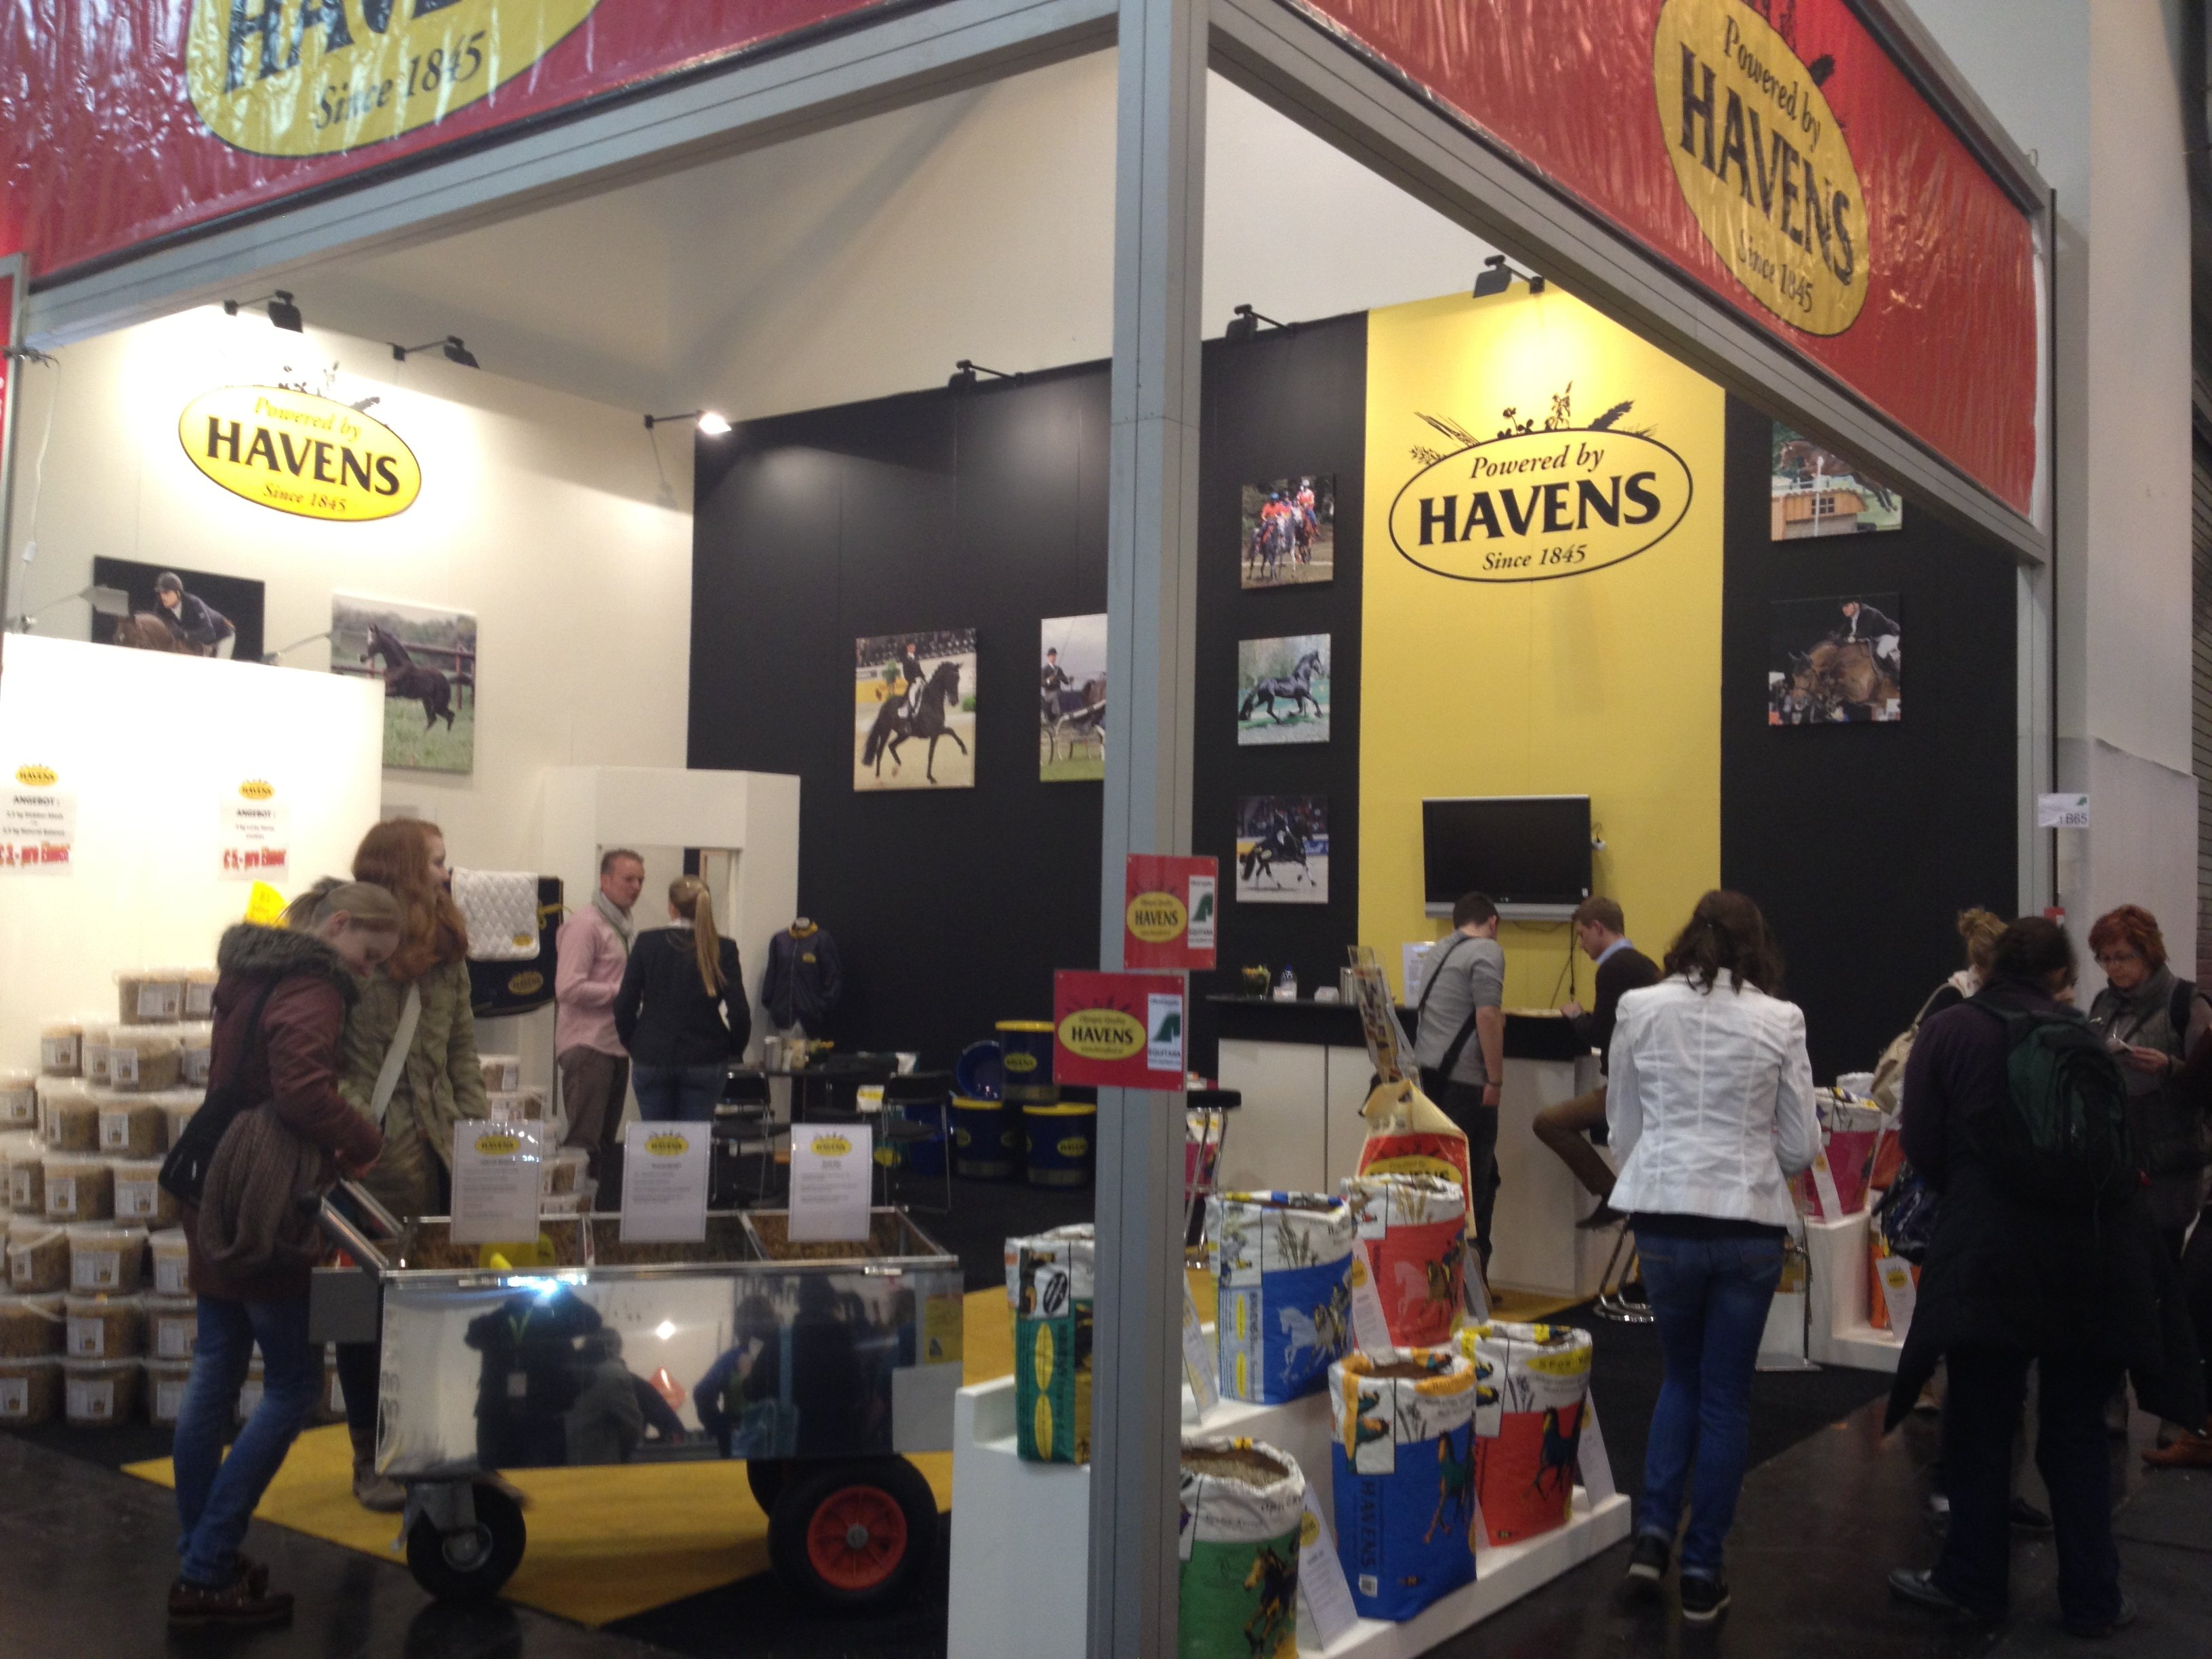 Havens - The official supplier - Equitana 2013